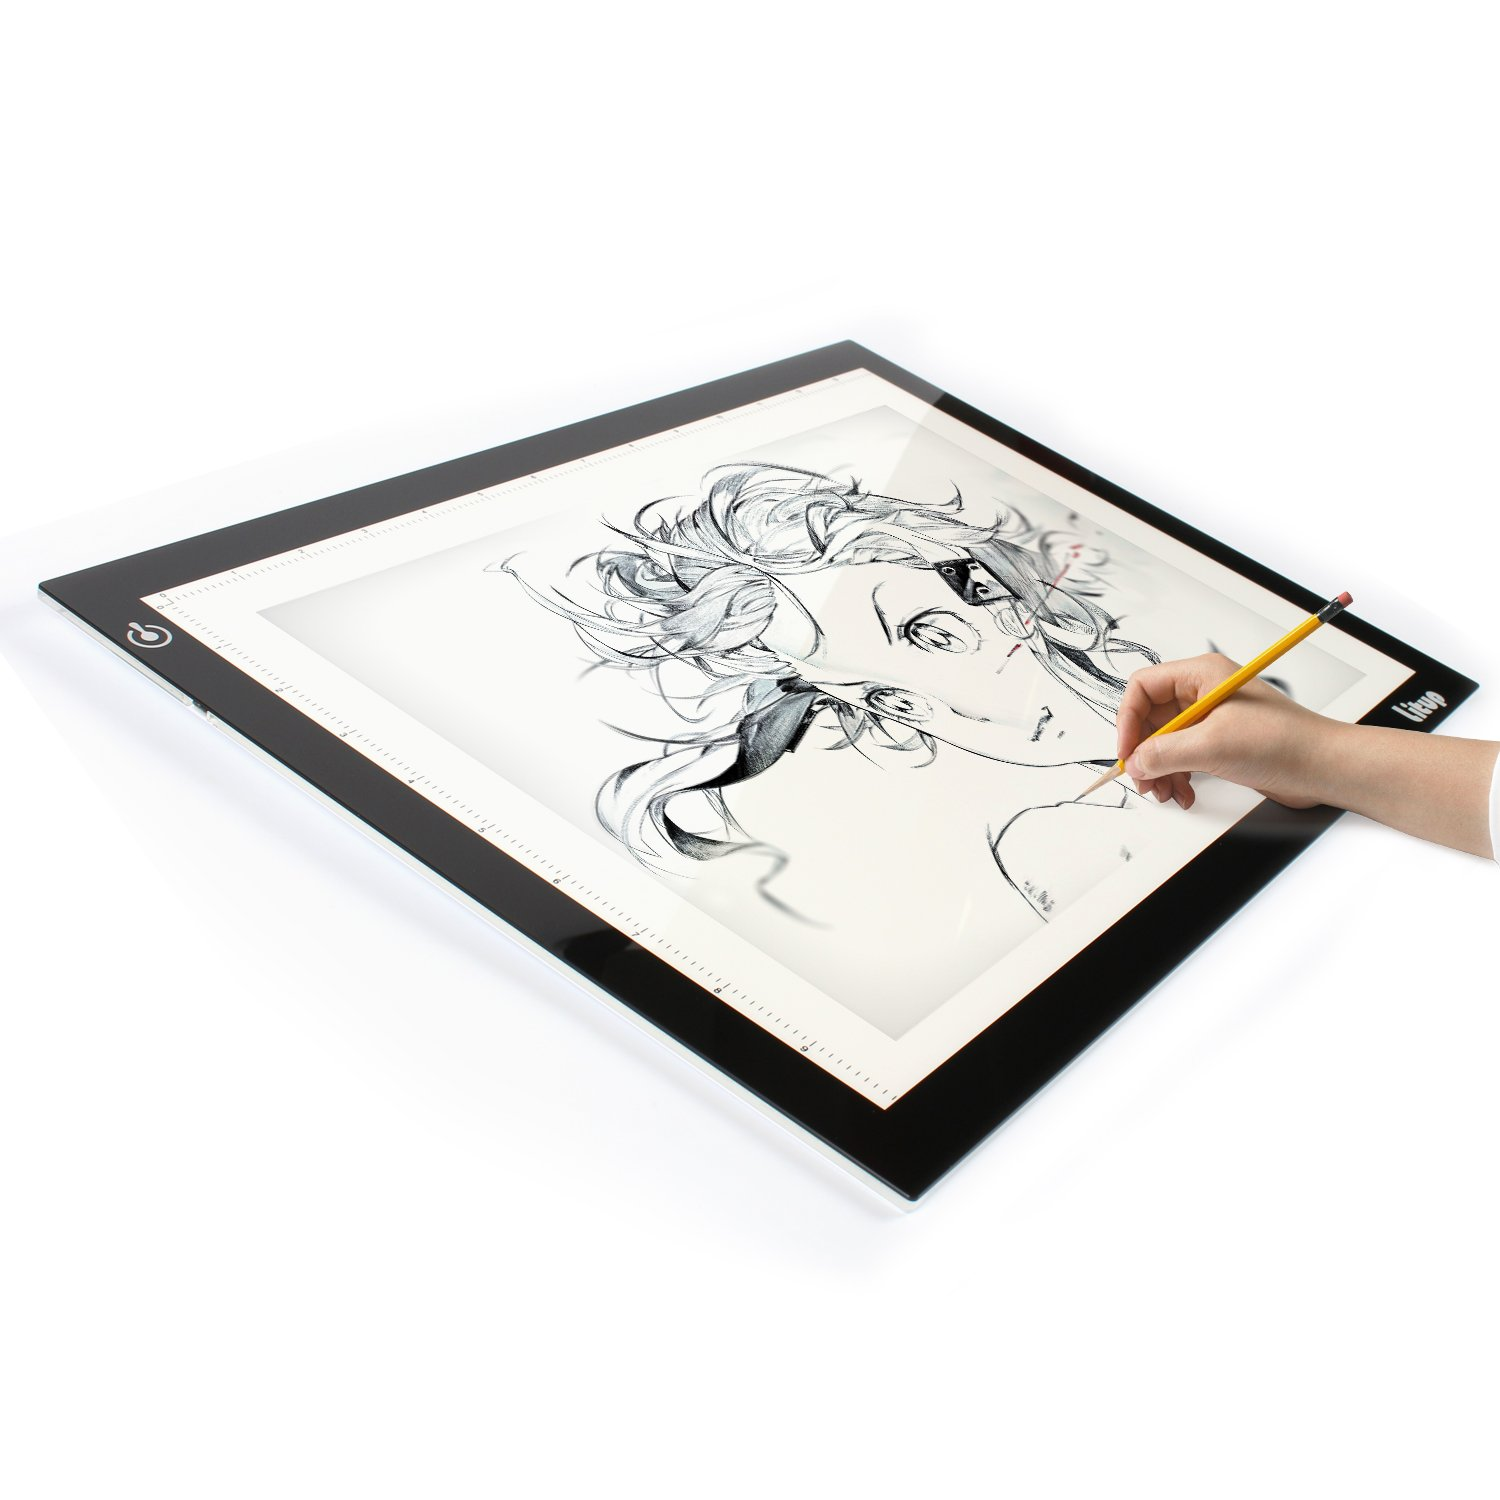 Litup Light Box Light Pad L15.63''x W11.81'' Tracing Light Box Drawing Light Board Light Table for Animation Sketching Artcraft- LP-B4